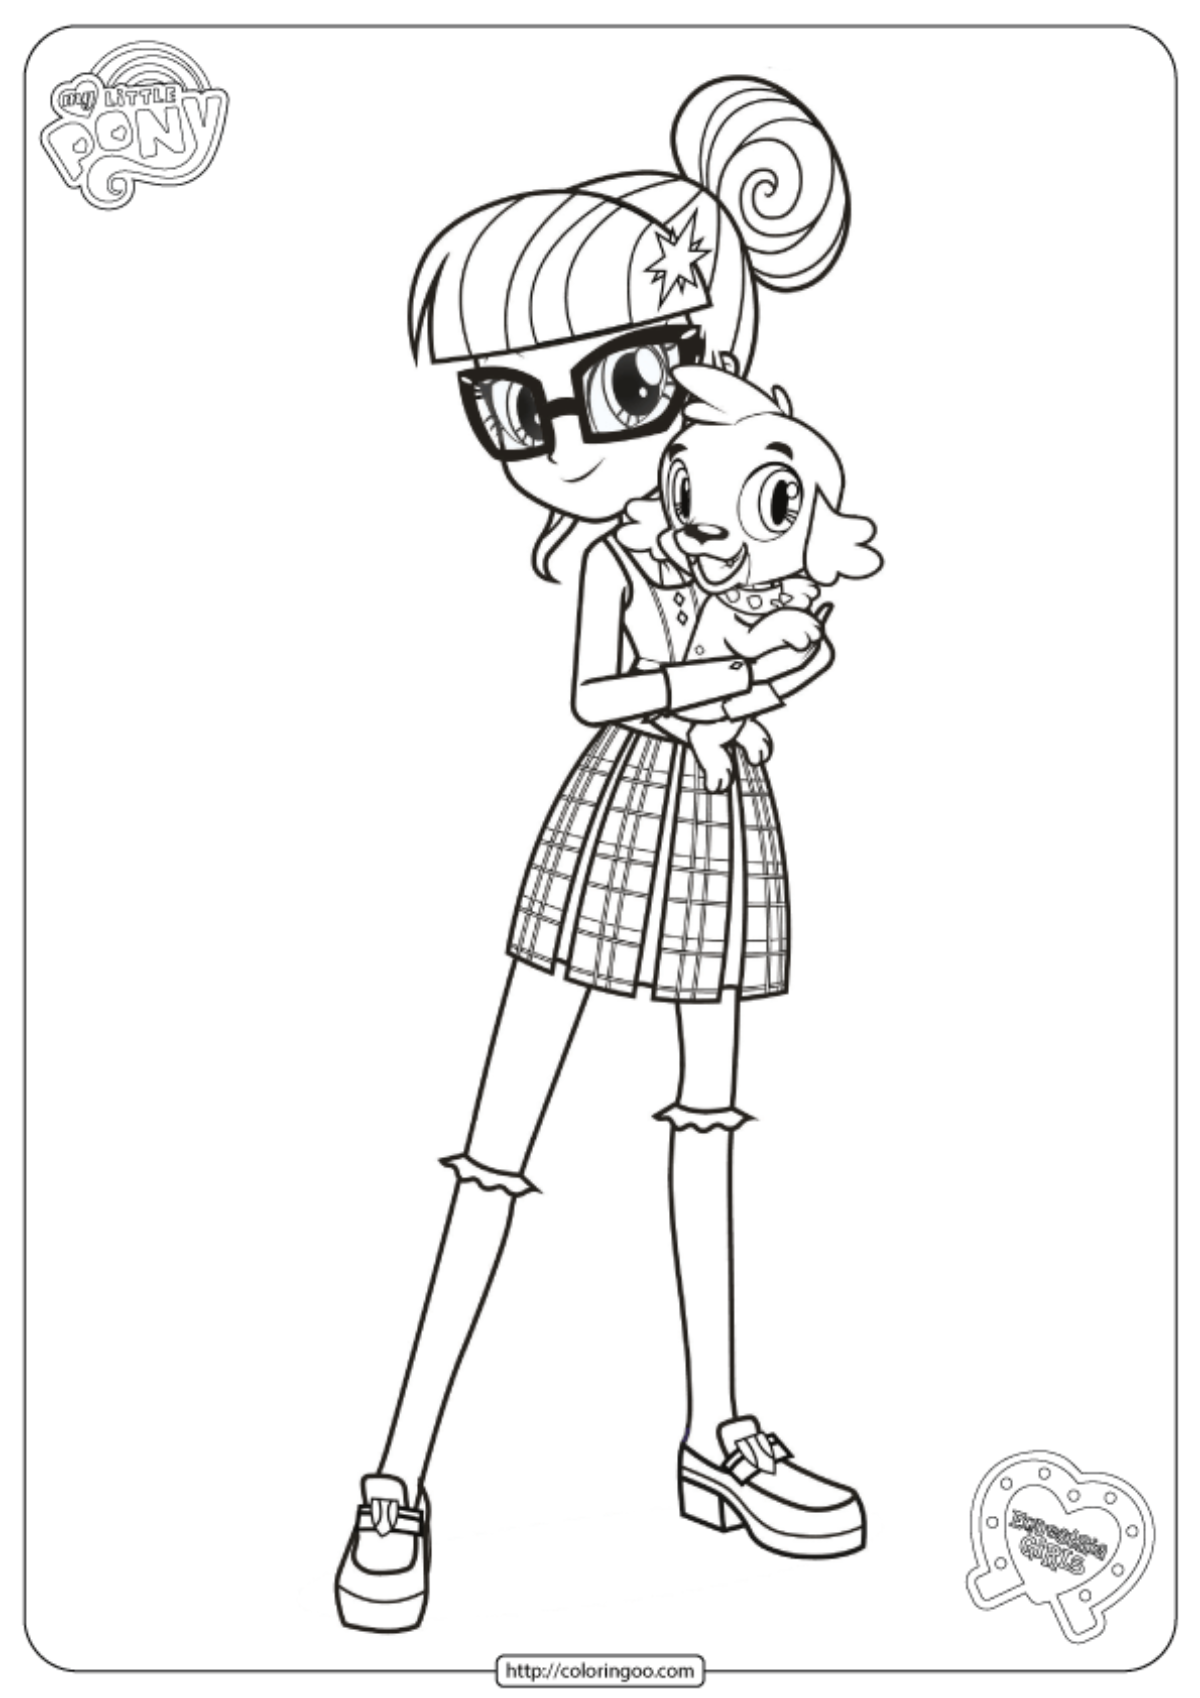 Mlp Equestria Girls Twilight Sparkle Coloring Page